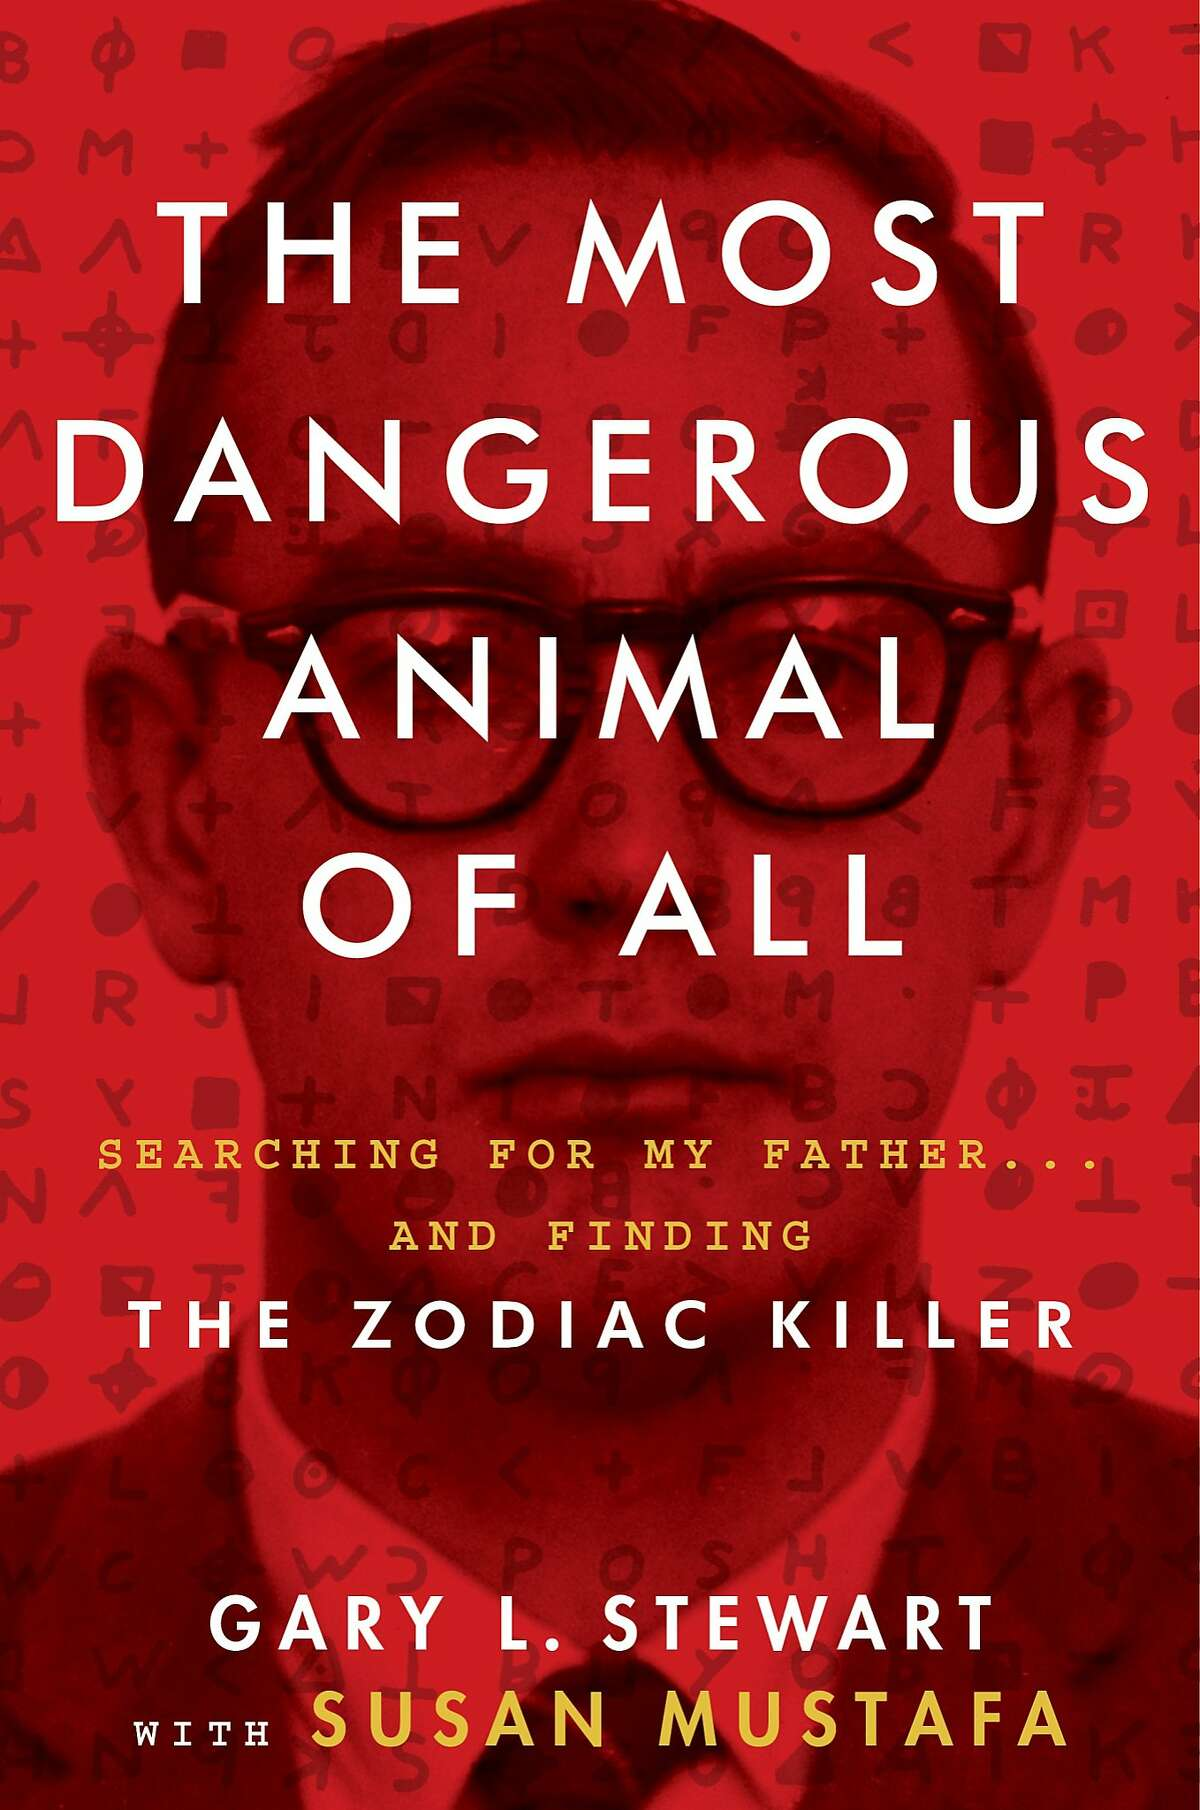 """""""The Most Dangerous Animal of All: Searching for My Father... and finding the Zodiac Killer,"""" by Gary L. Stewart with Susan Mustafa"""